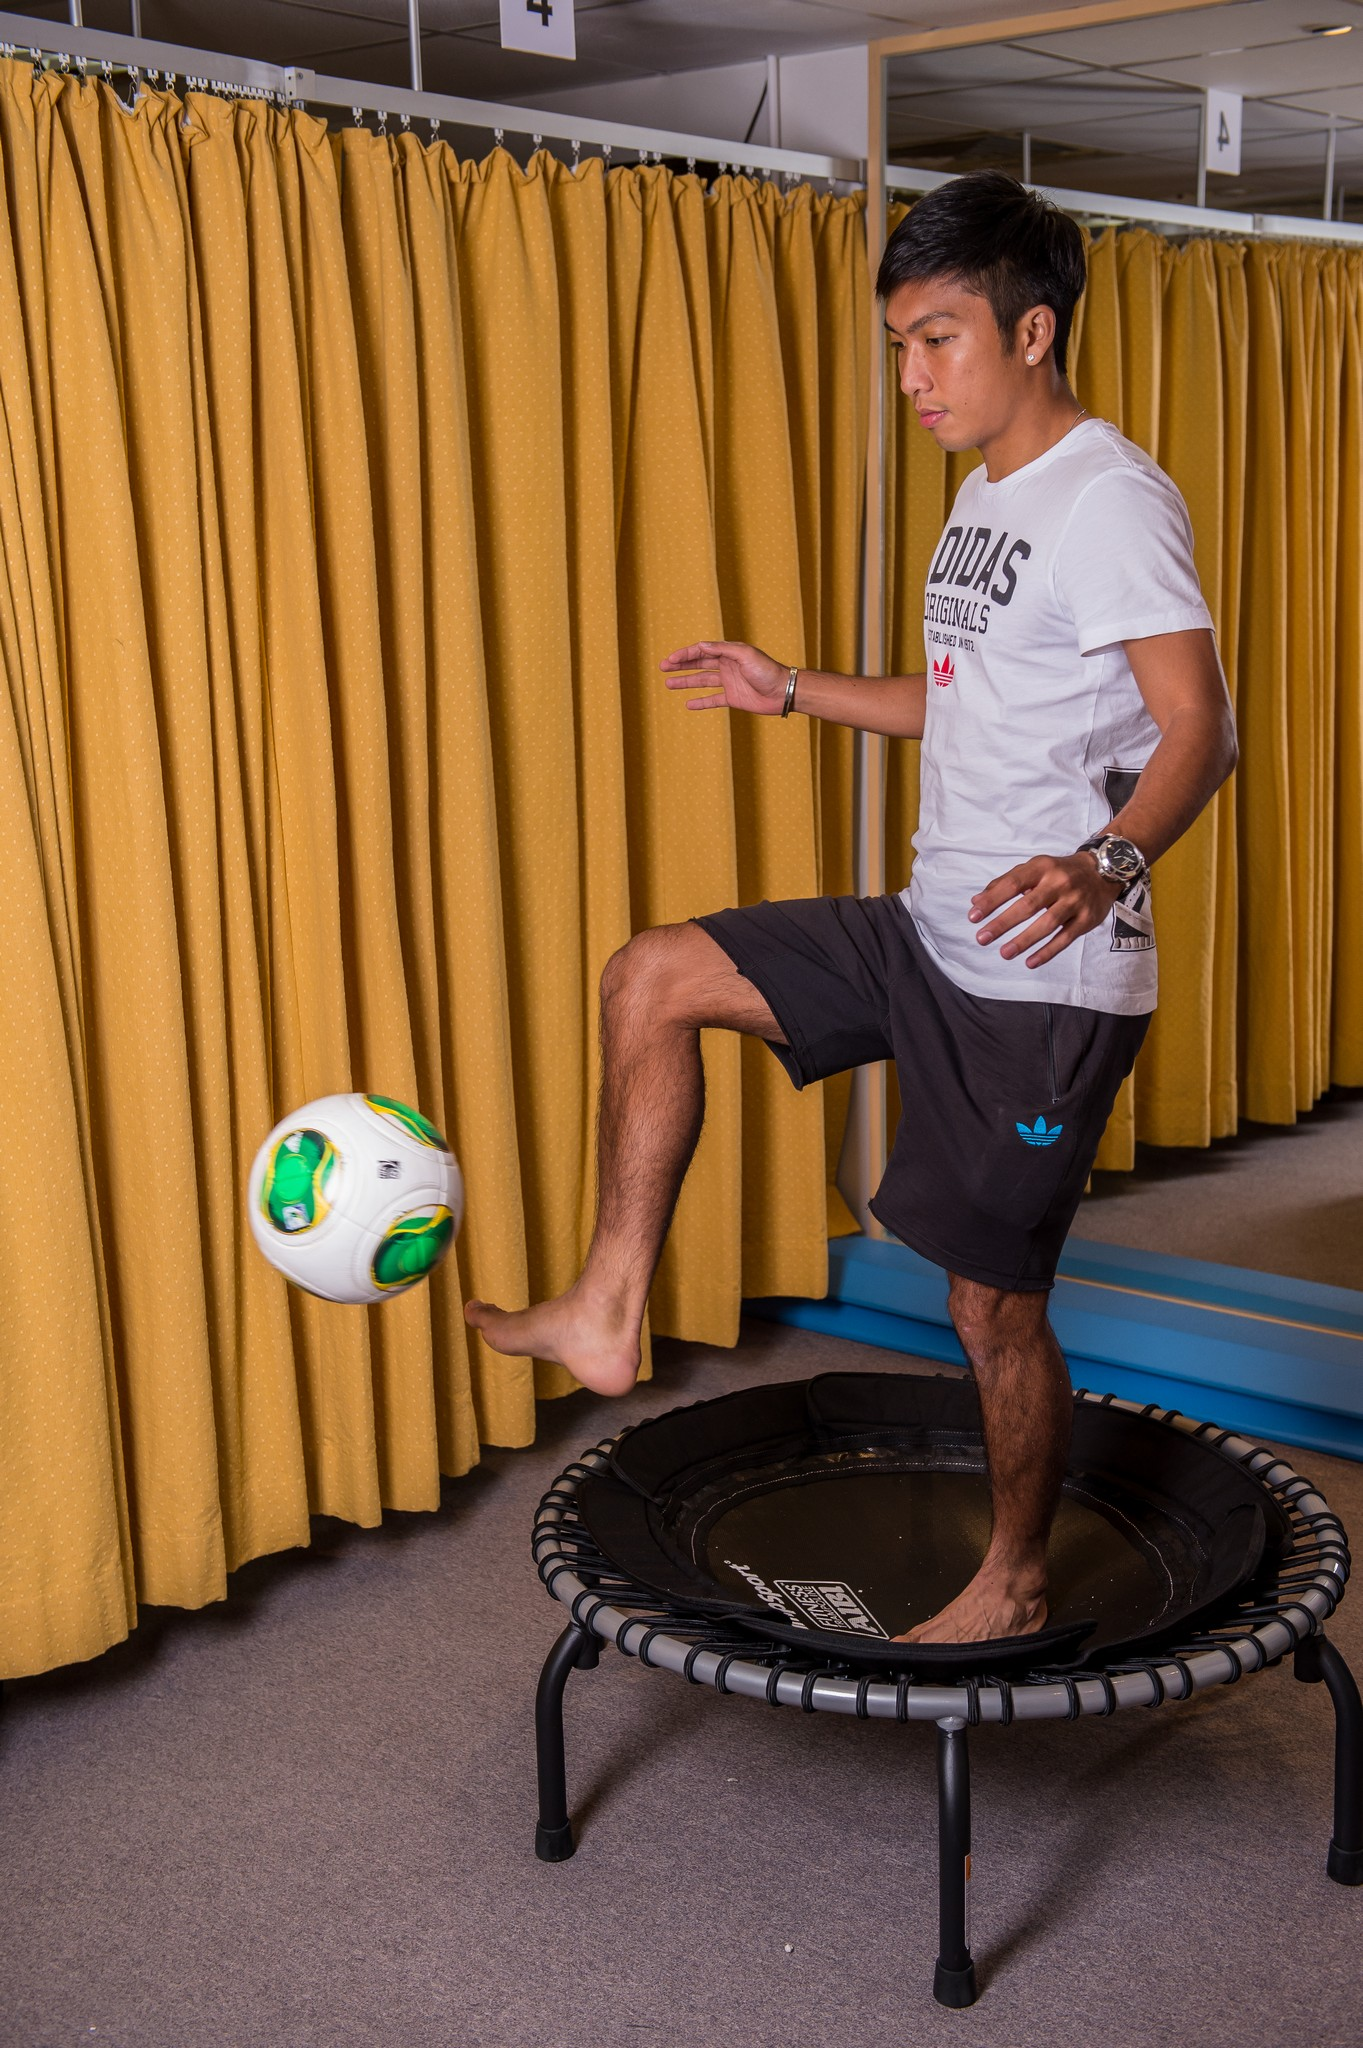 how to become a physiotherapist for a professional sports team